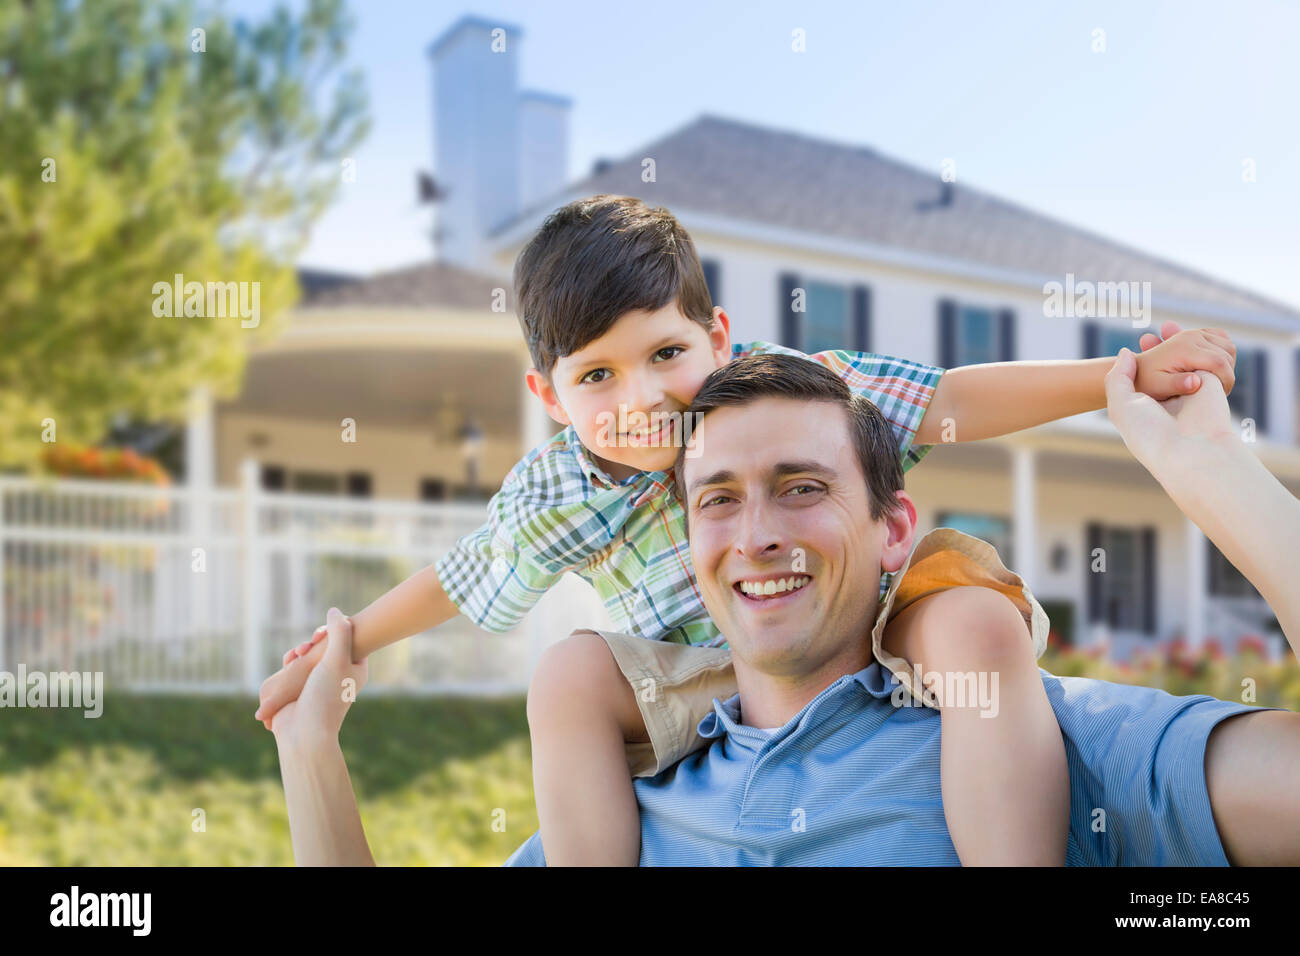 Mixed Race Father and Son Playing Piggyback in Front of Their House. - Stock Image